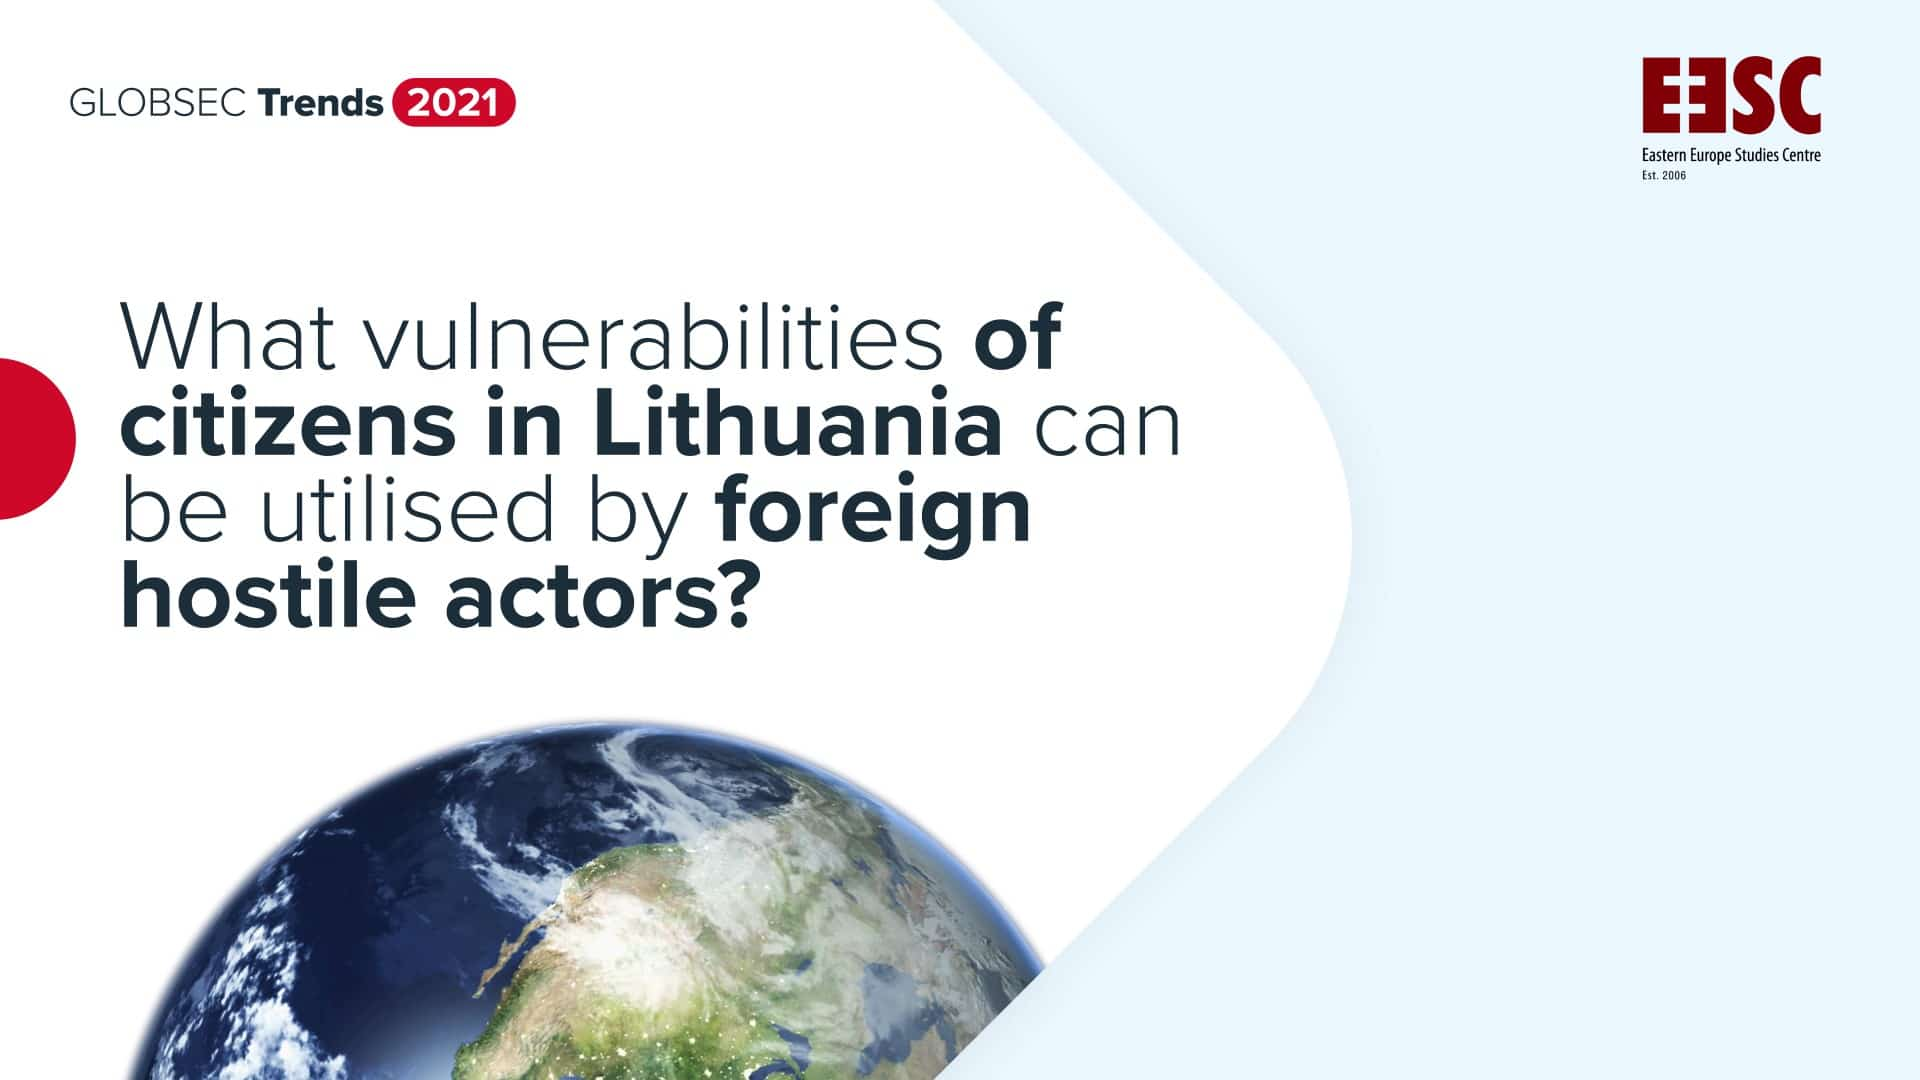 Vulnerabilities in Lithuania: Which can be used by foreign hostile actors?